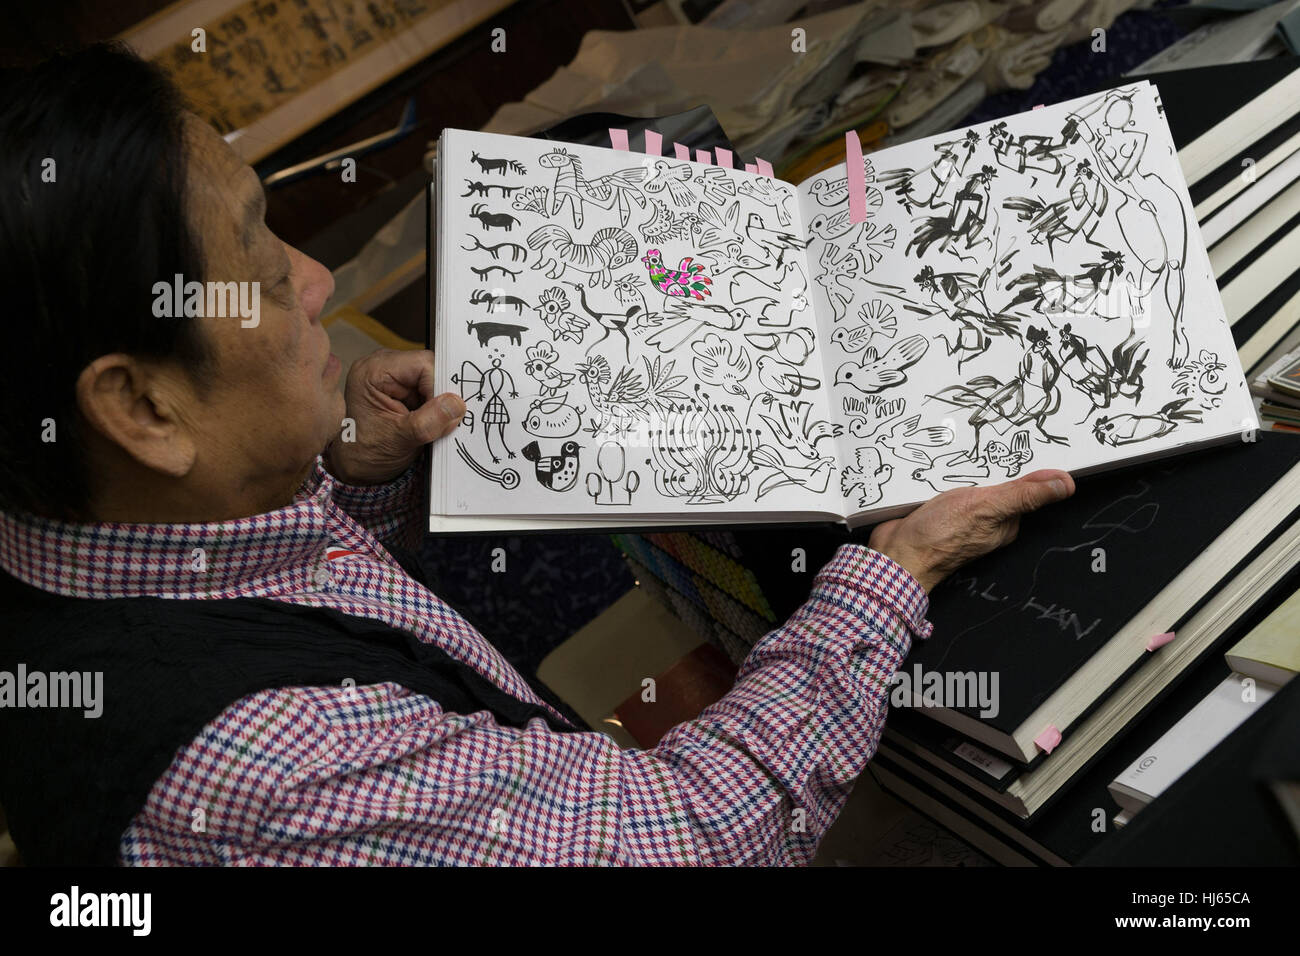 (170126) -- BEIJING, Jan. 26, 2017 (Xinhua) -- Chinese artist Han Meilin, 80, shows his sketches at his studio in - Stock Image